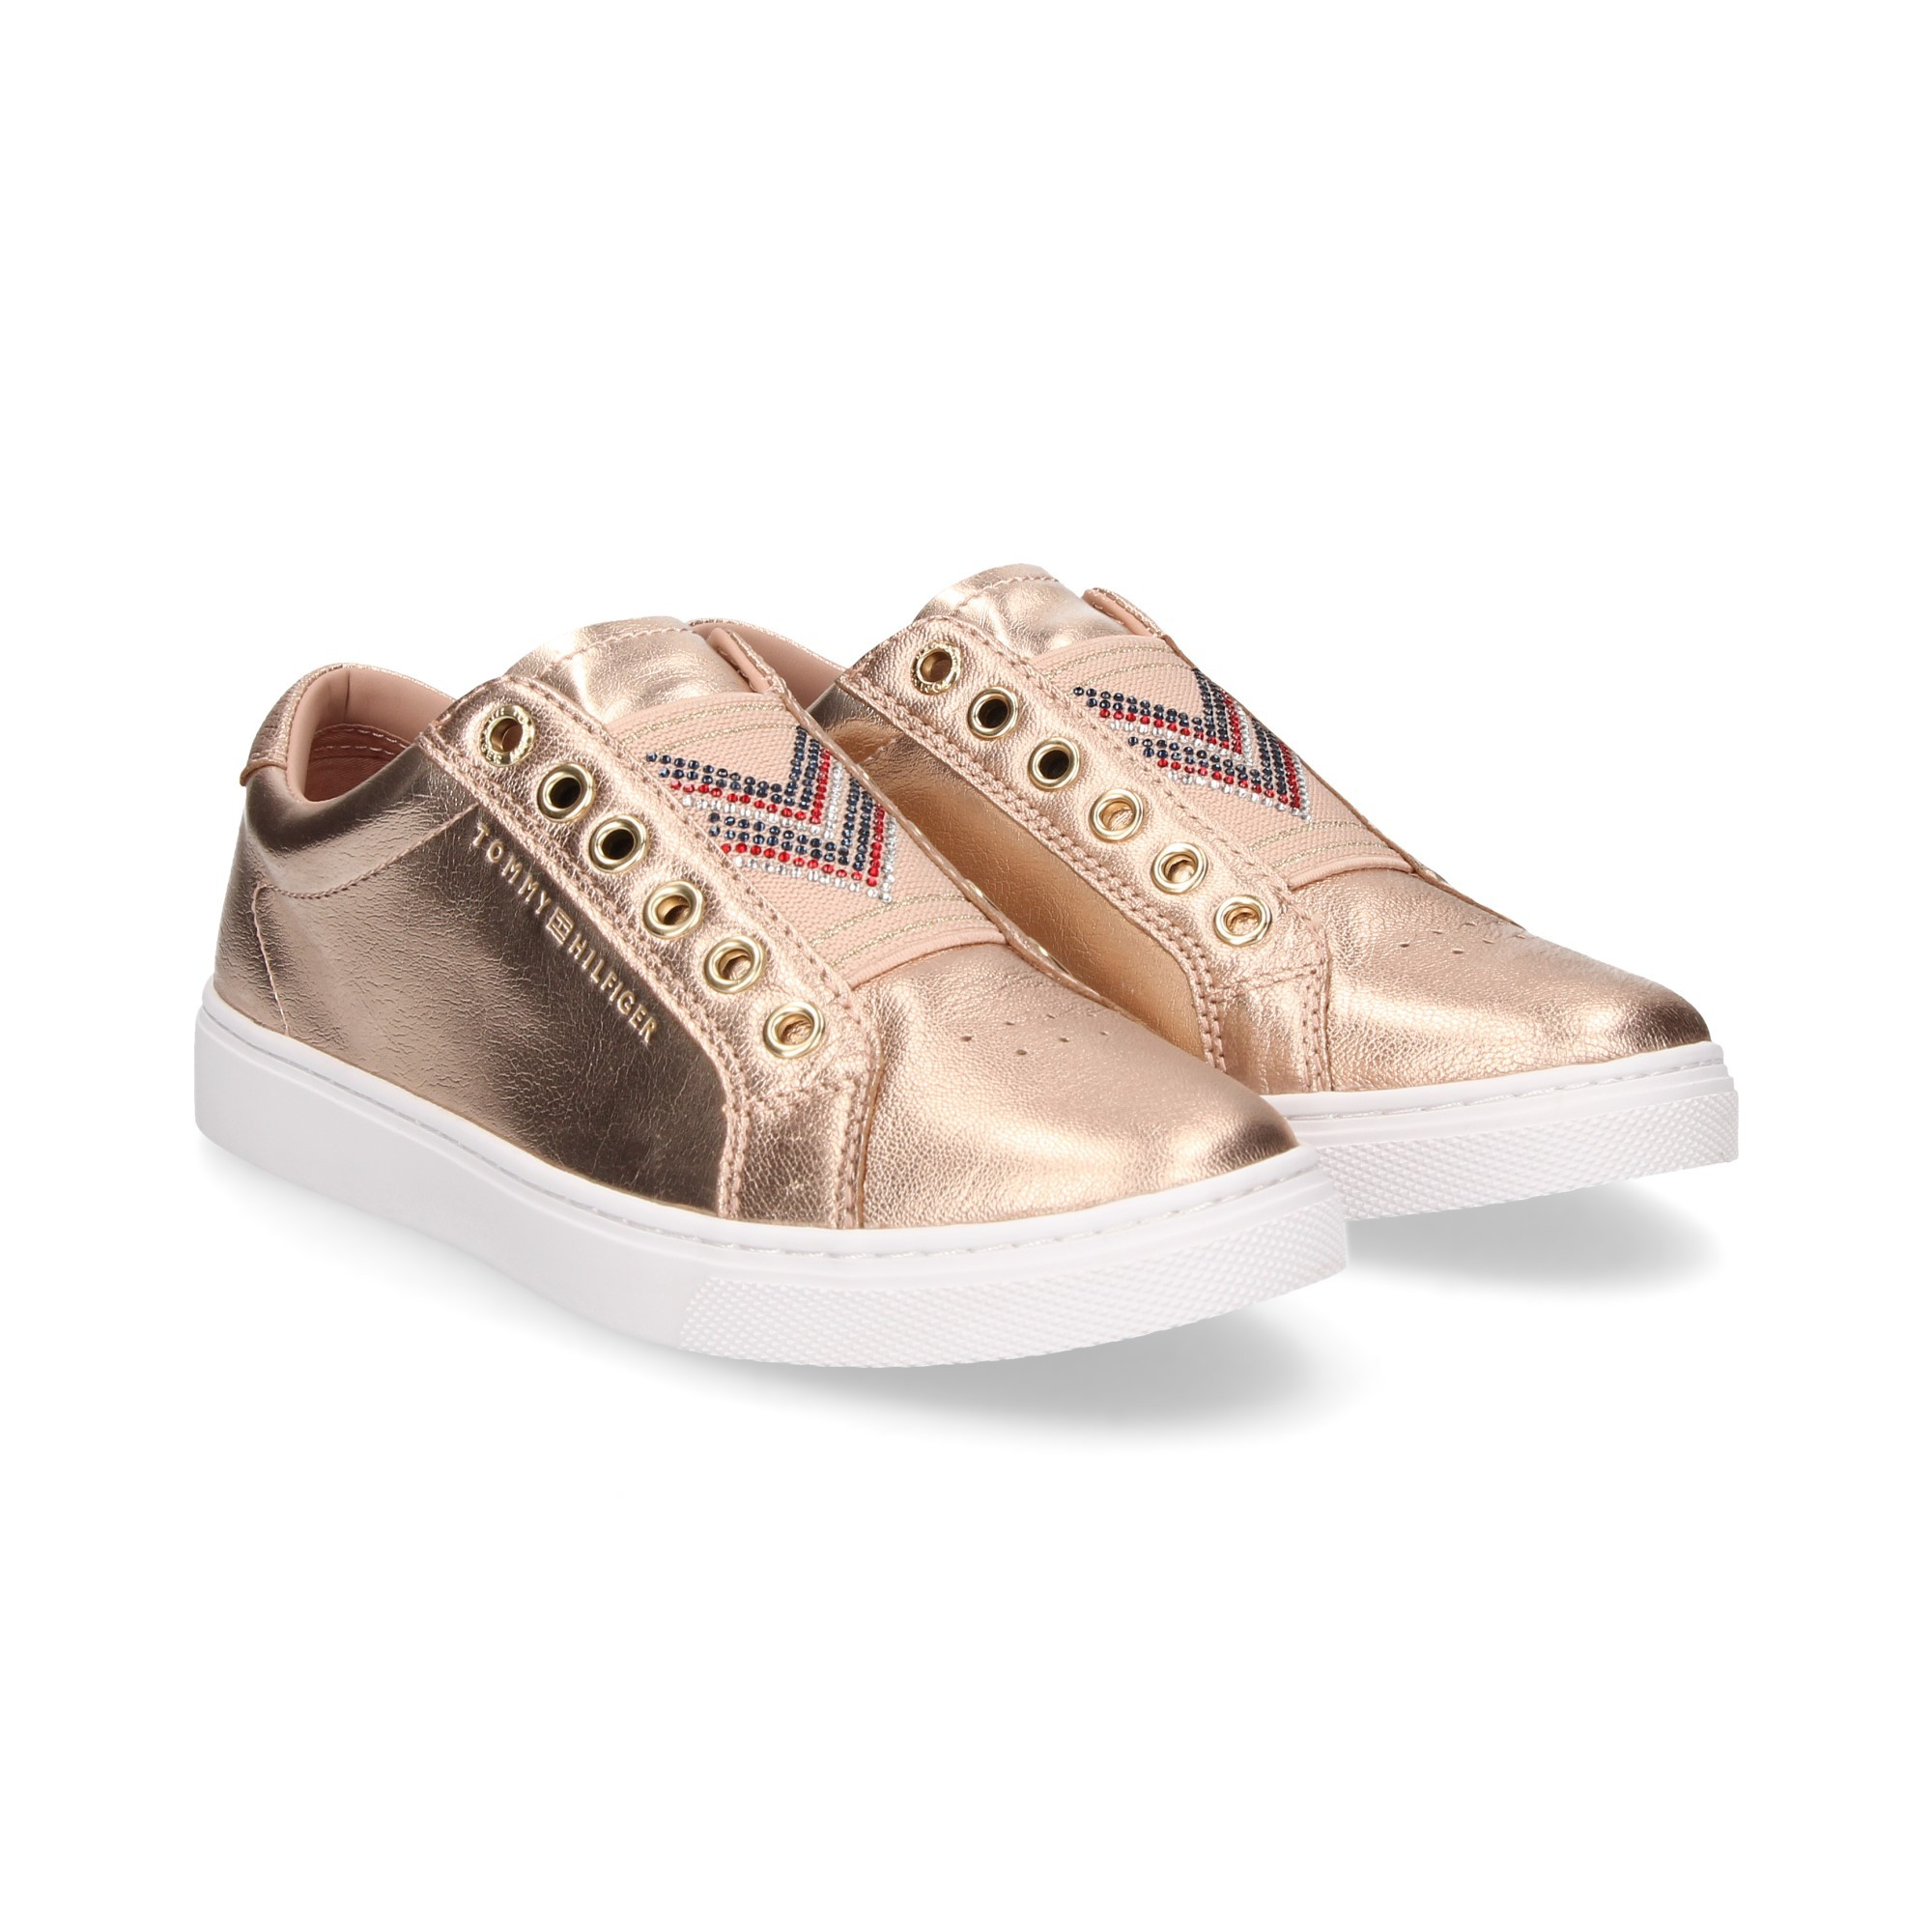 08291eb69 TOMMY HILFIGER Women's Sneakers FW03642901 ROSEGOLD